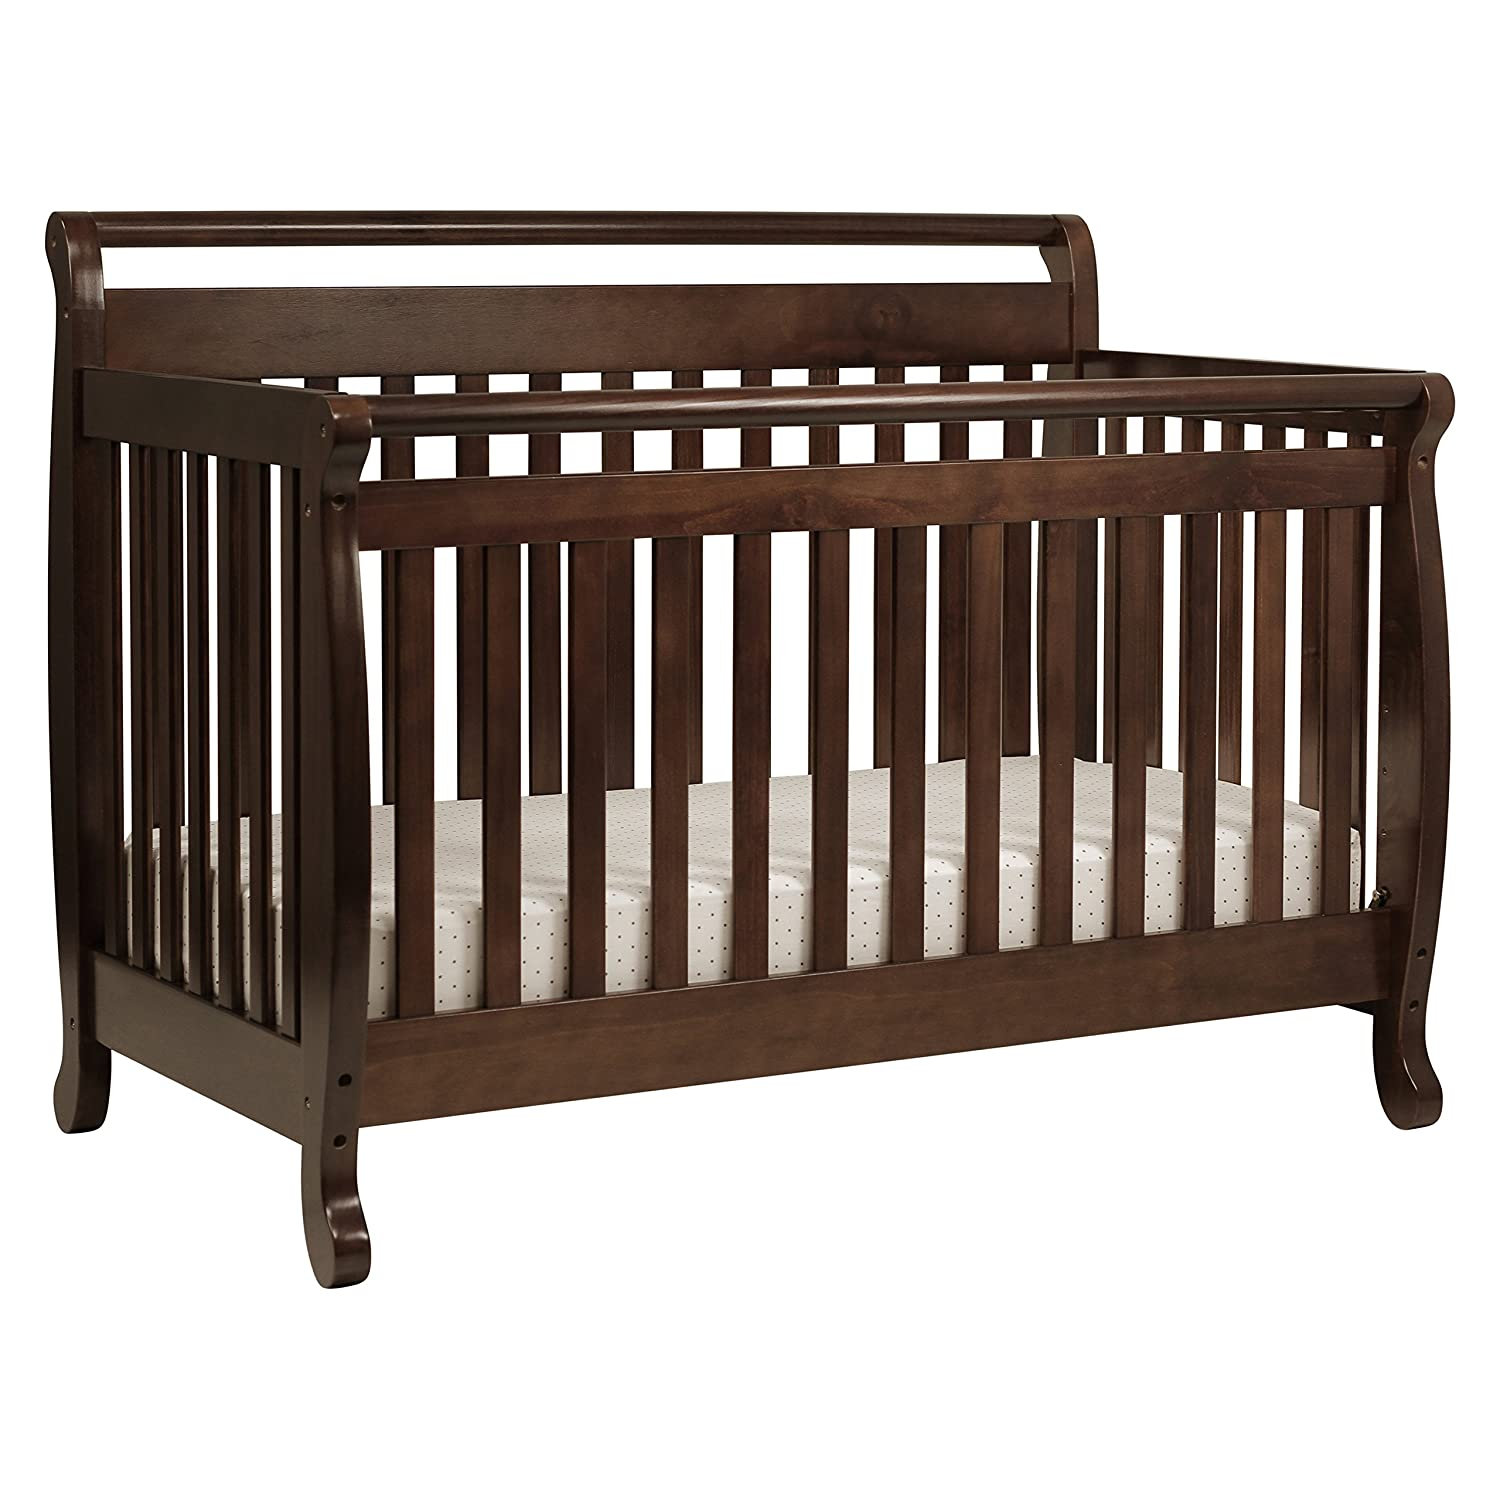 Amazon.com : DaVinci Emily 4-in-1 Convertible Crib in Espresso Finish :  Toddler Beds : Baby